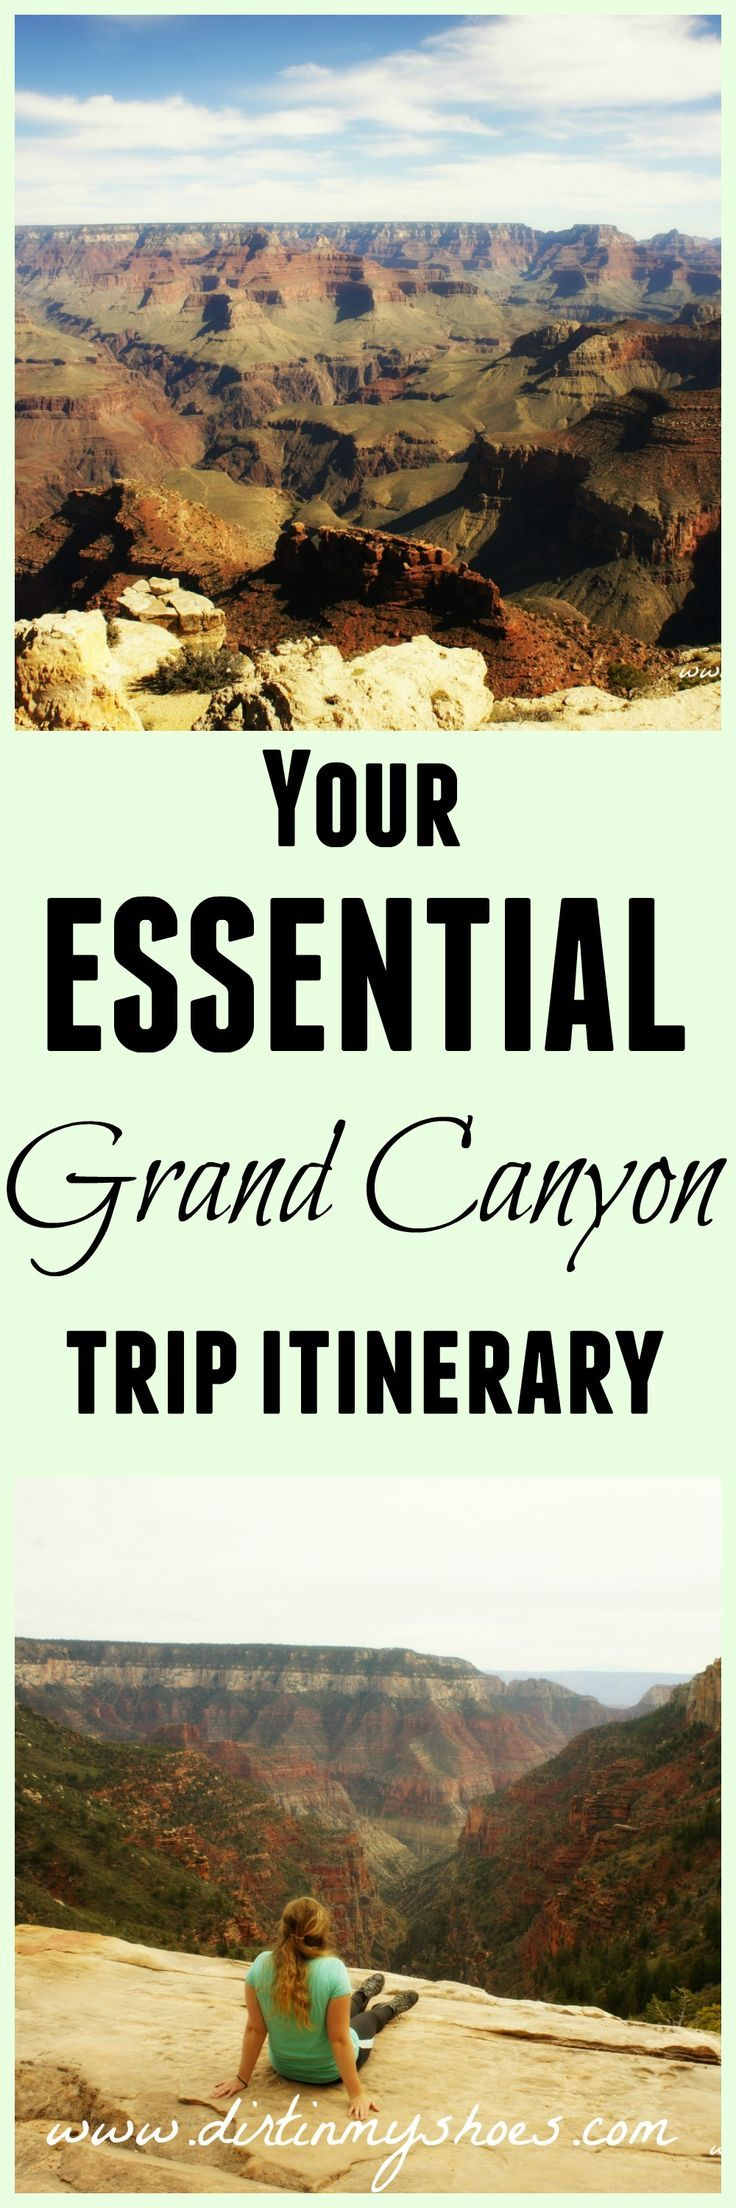 This itinerary made our trip sooo much better.  If you're going to the Grand Canyon, take this with you!